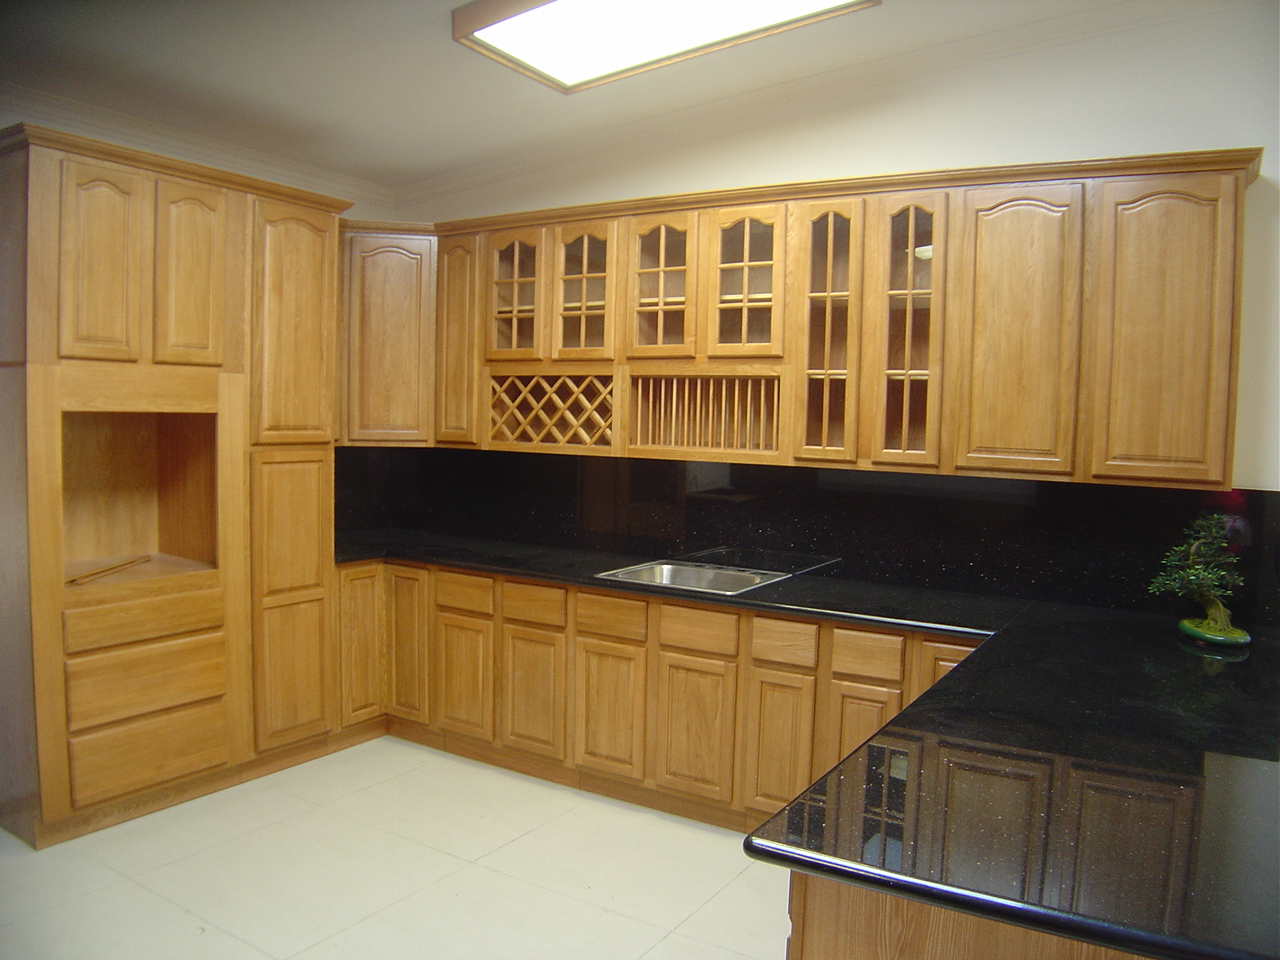 Oak kitchen cabinets for your interior kitchen minimalist for Kitchen ideas with oak cabinets